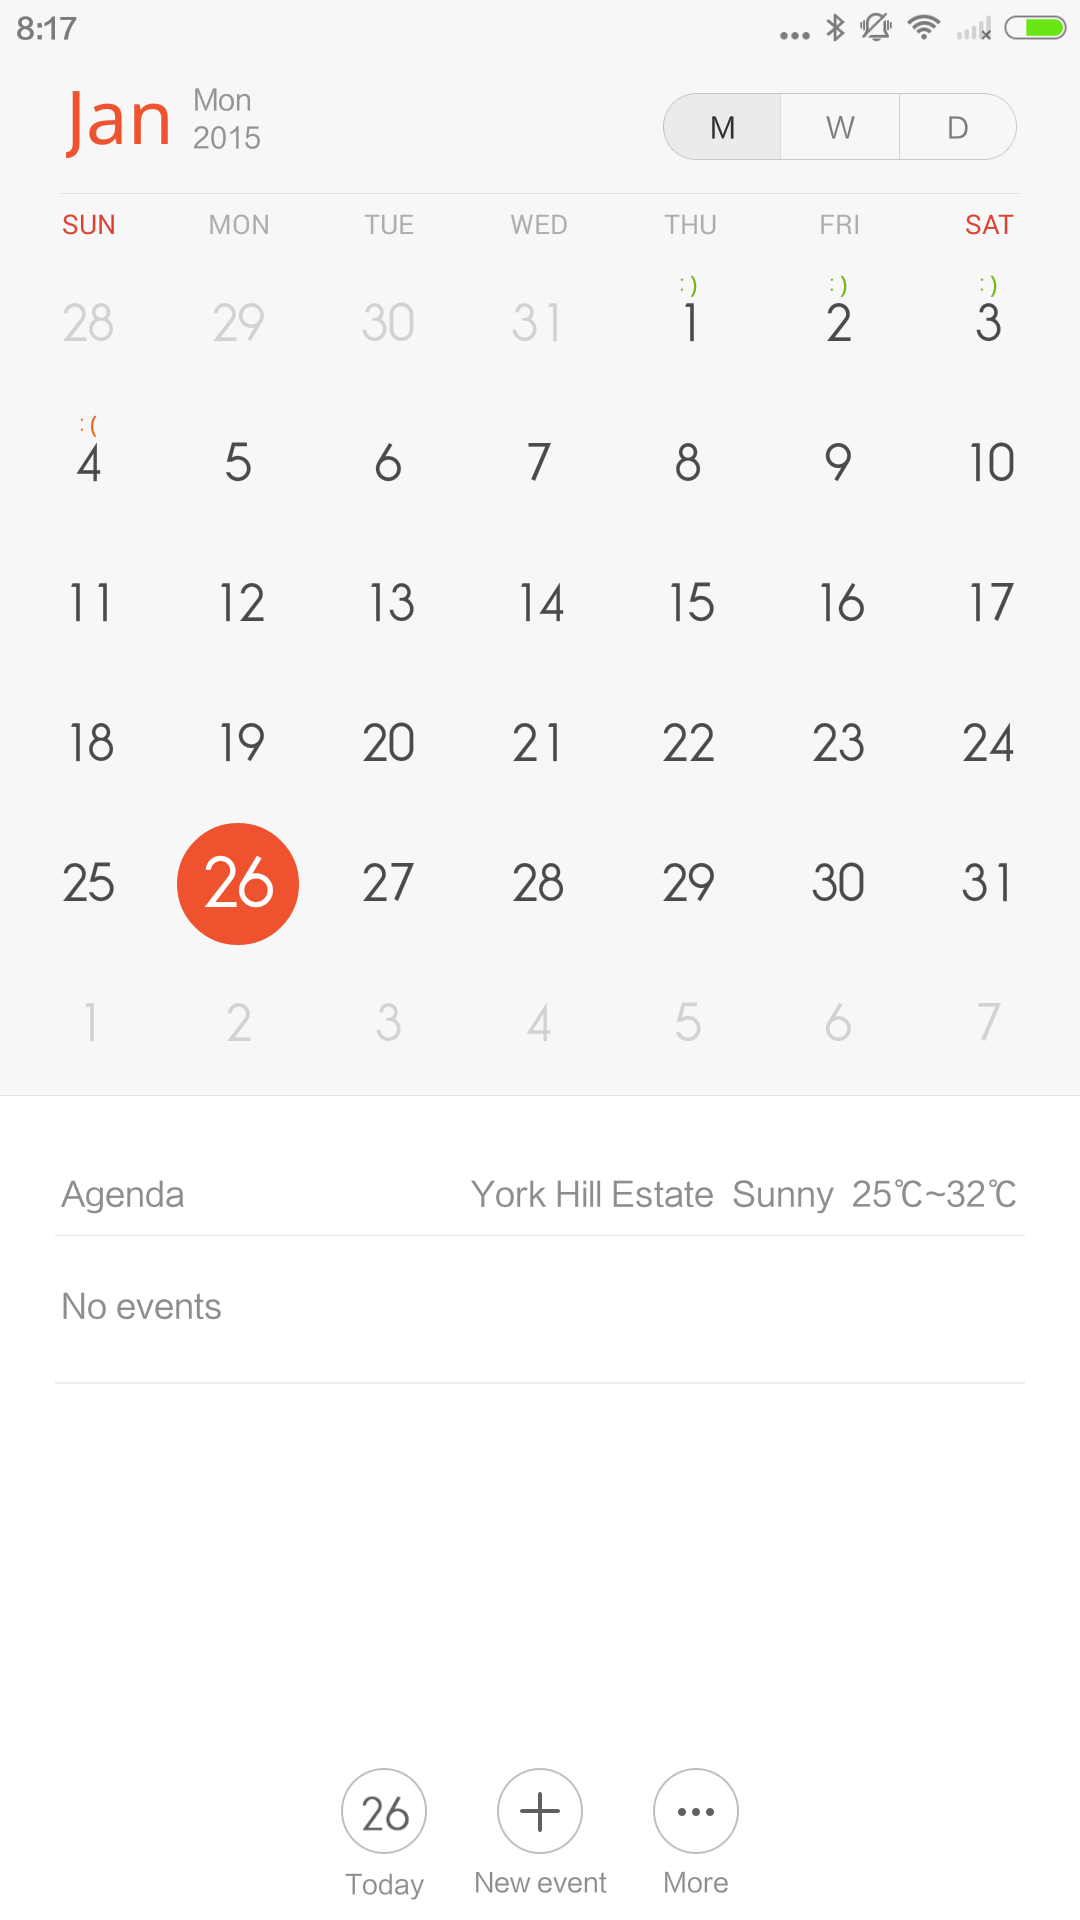 This MIUI 6 calendar looks awfully familiar.